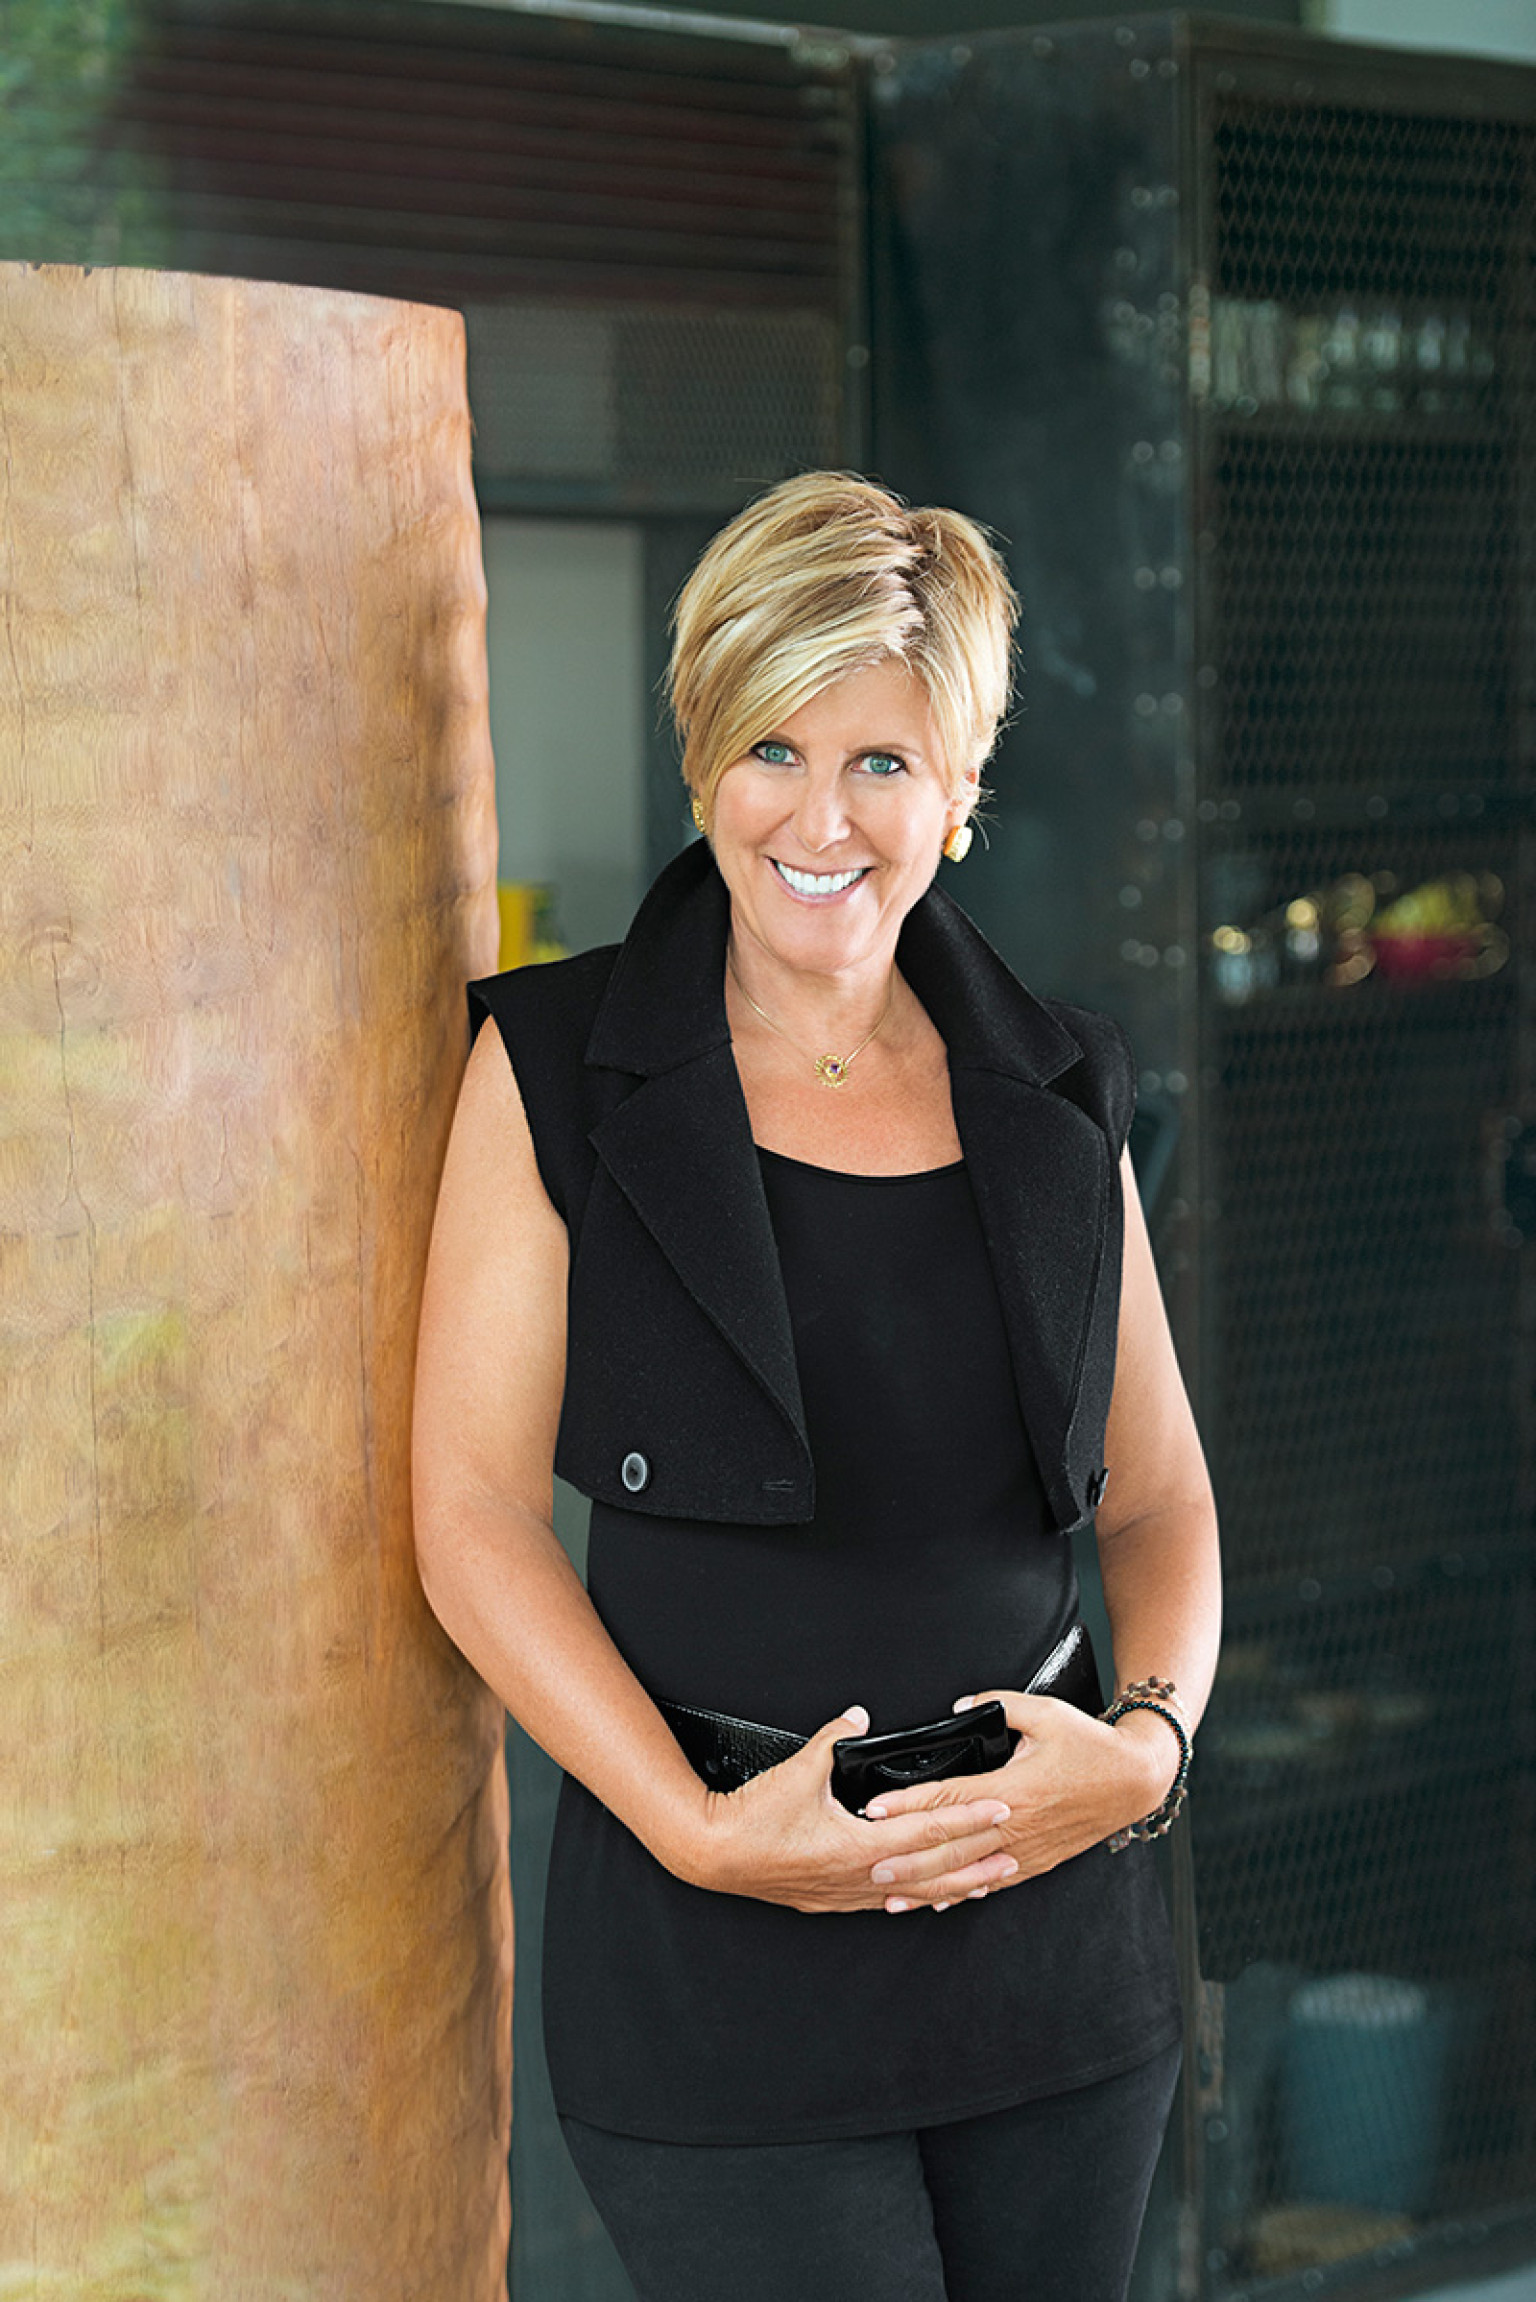 Pictures of suze orman Recent Pictures of News Anchors, Reporters & Contributors